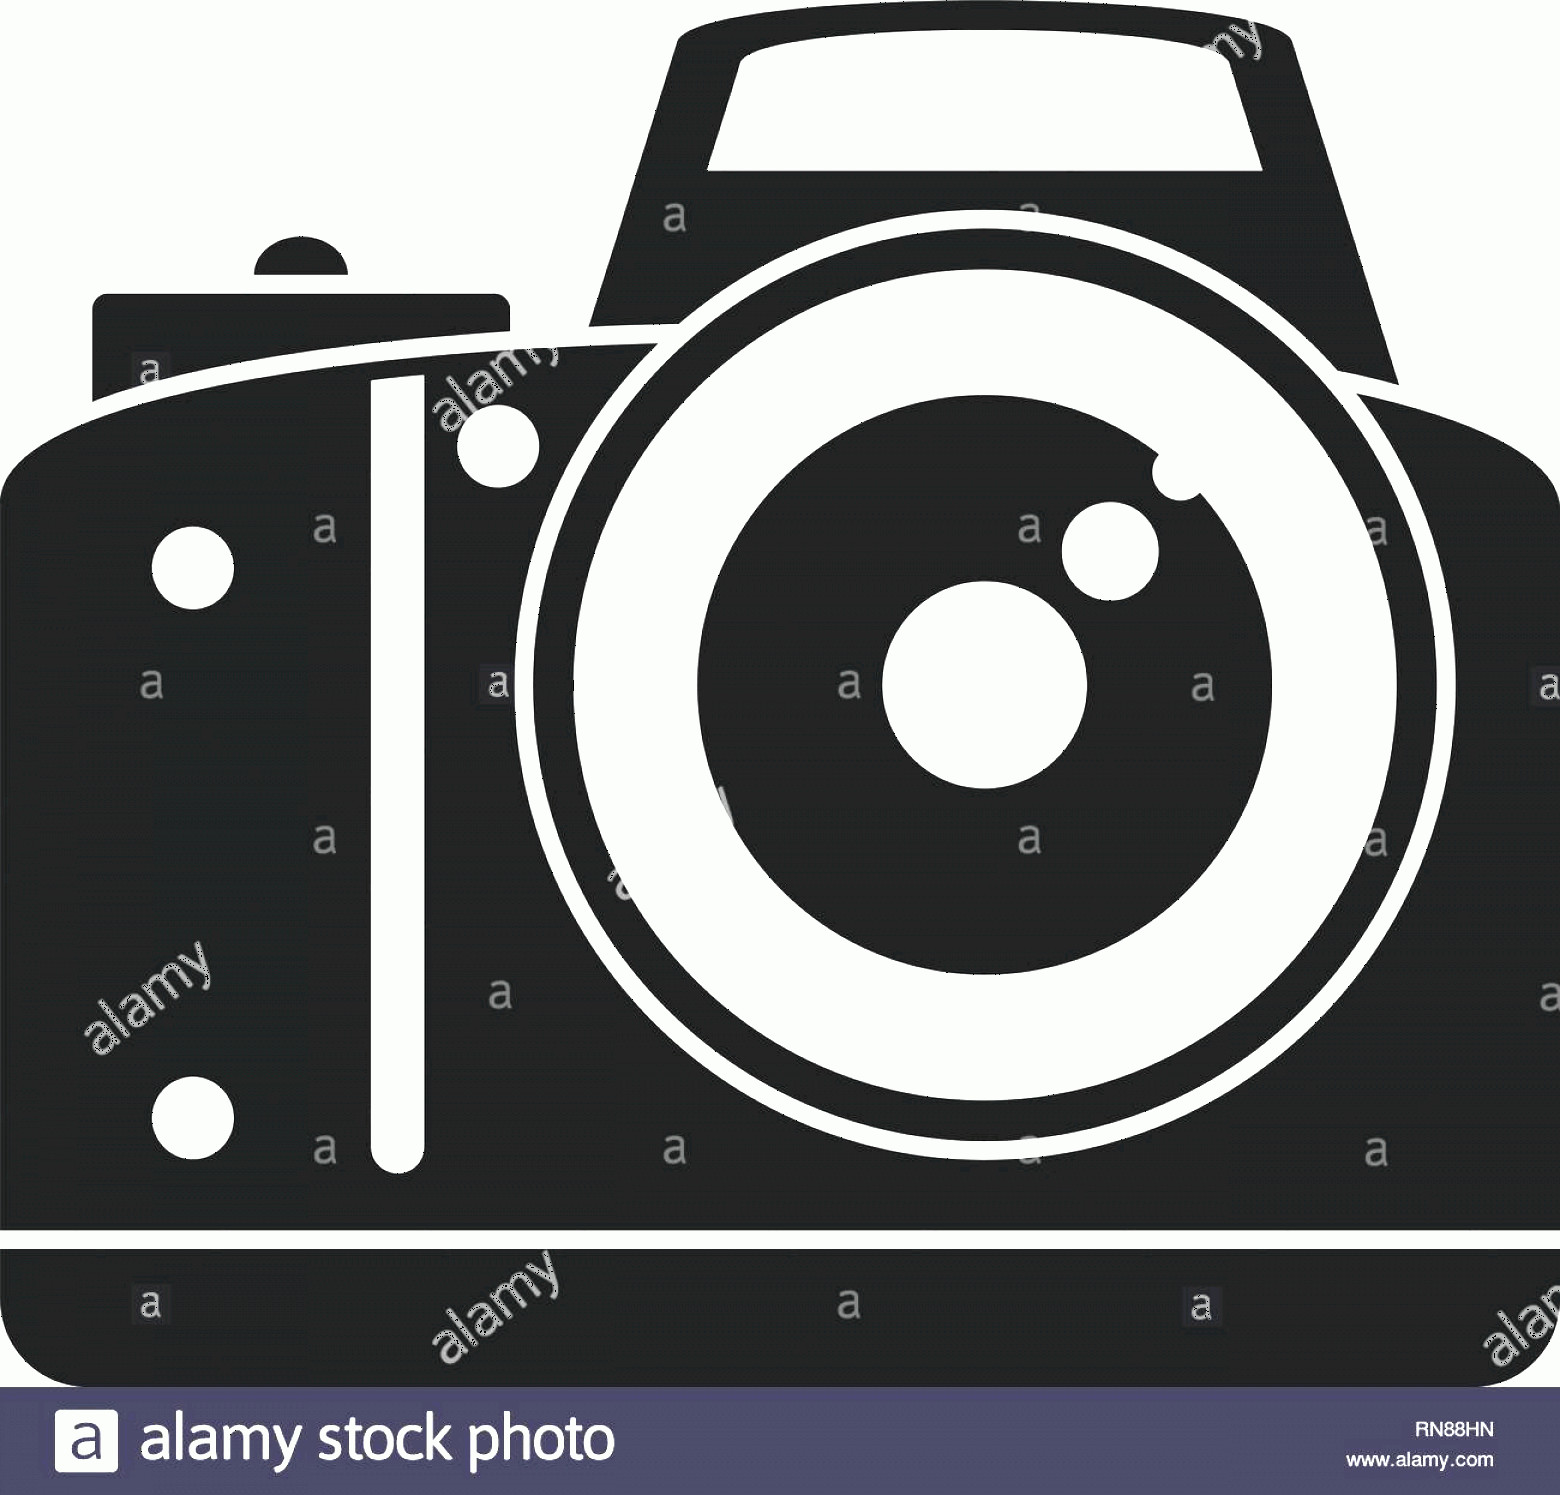 Classic Camera Vector: Professional Camera Icon Simple Illustration Of Professional Camera Vector Icon For Web Design Isolated On White Background Image